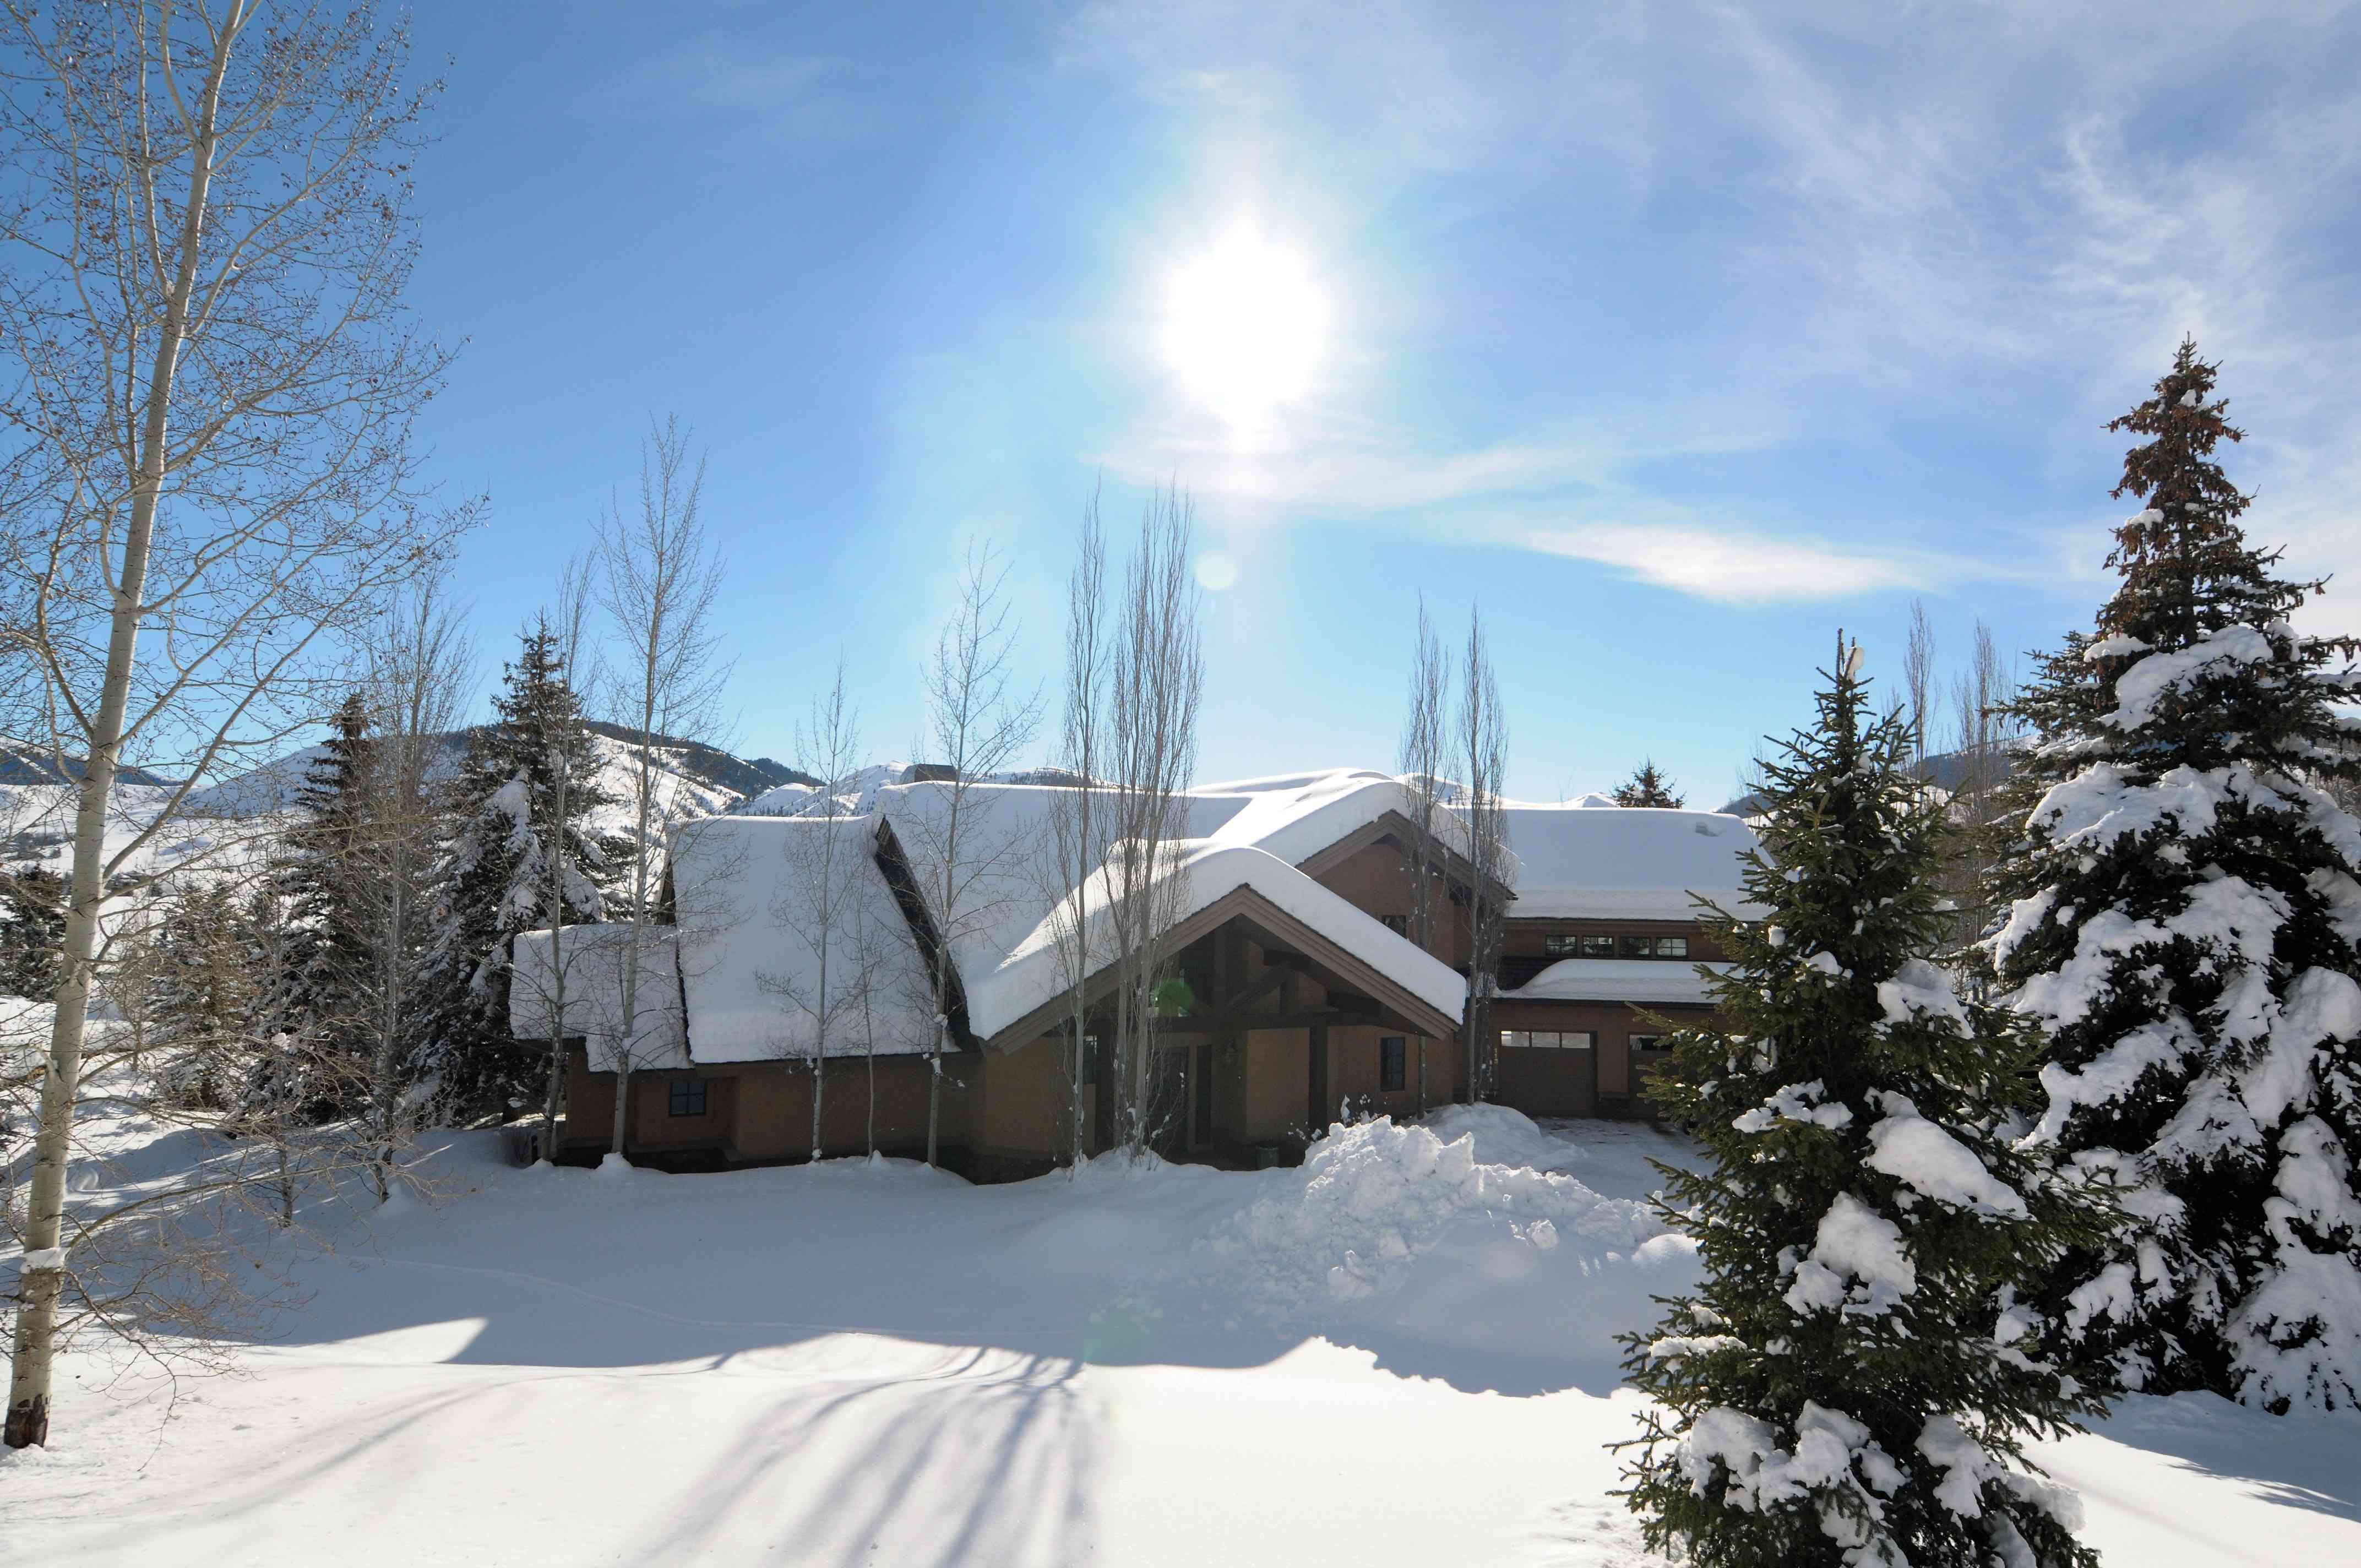 Single Family Home for Sale at Stunning Panoramic Views 113 Sagewillow Road Sun Valley, Idaho 83353 United States